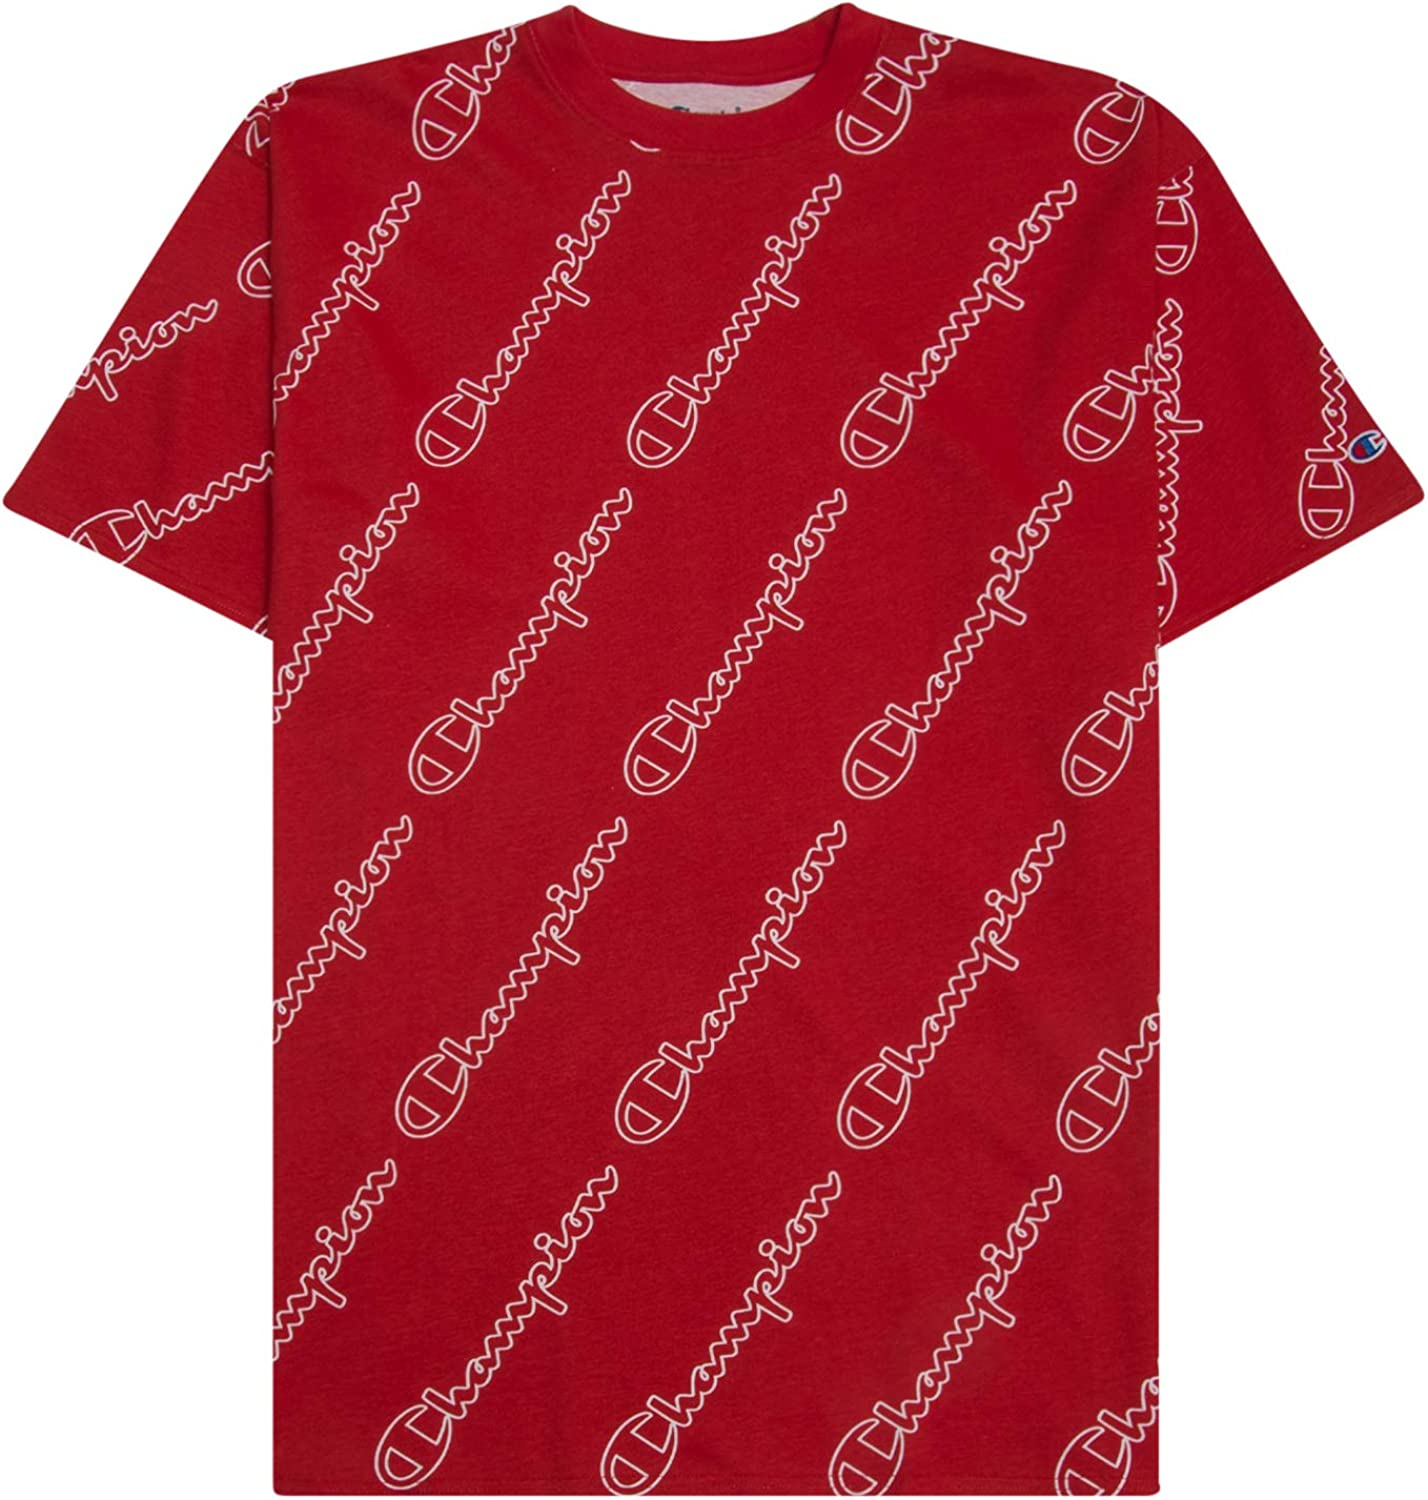 Big /& Tall Graphic Tee Mens Big and Tall Champion All Over Print Shirt For Men